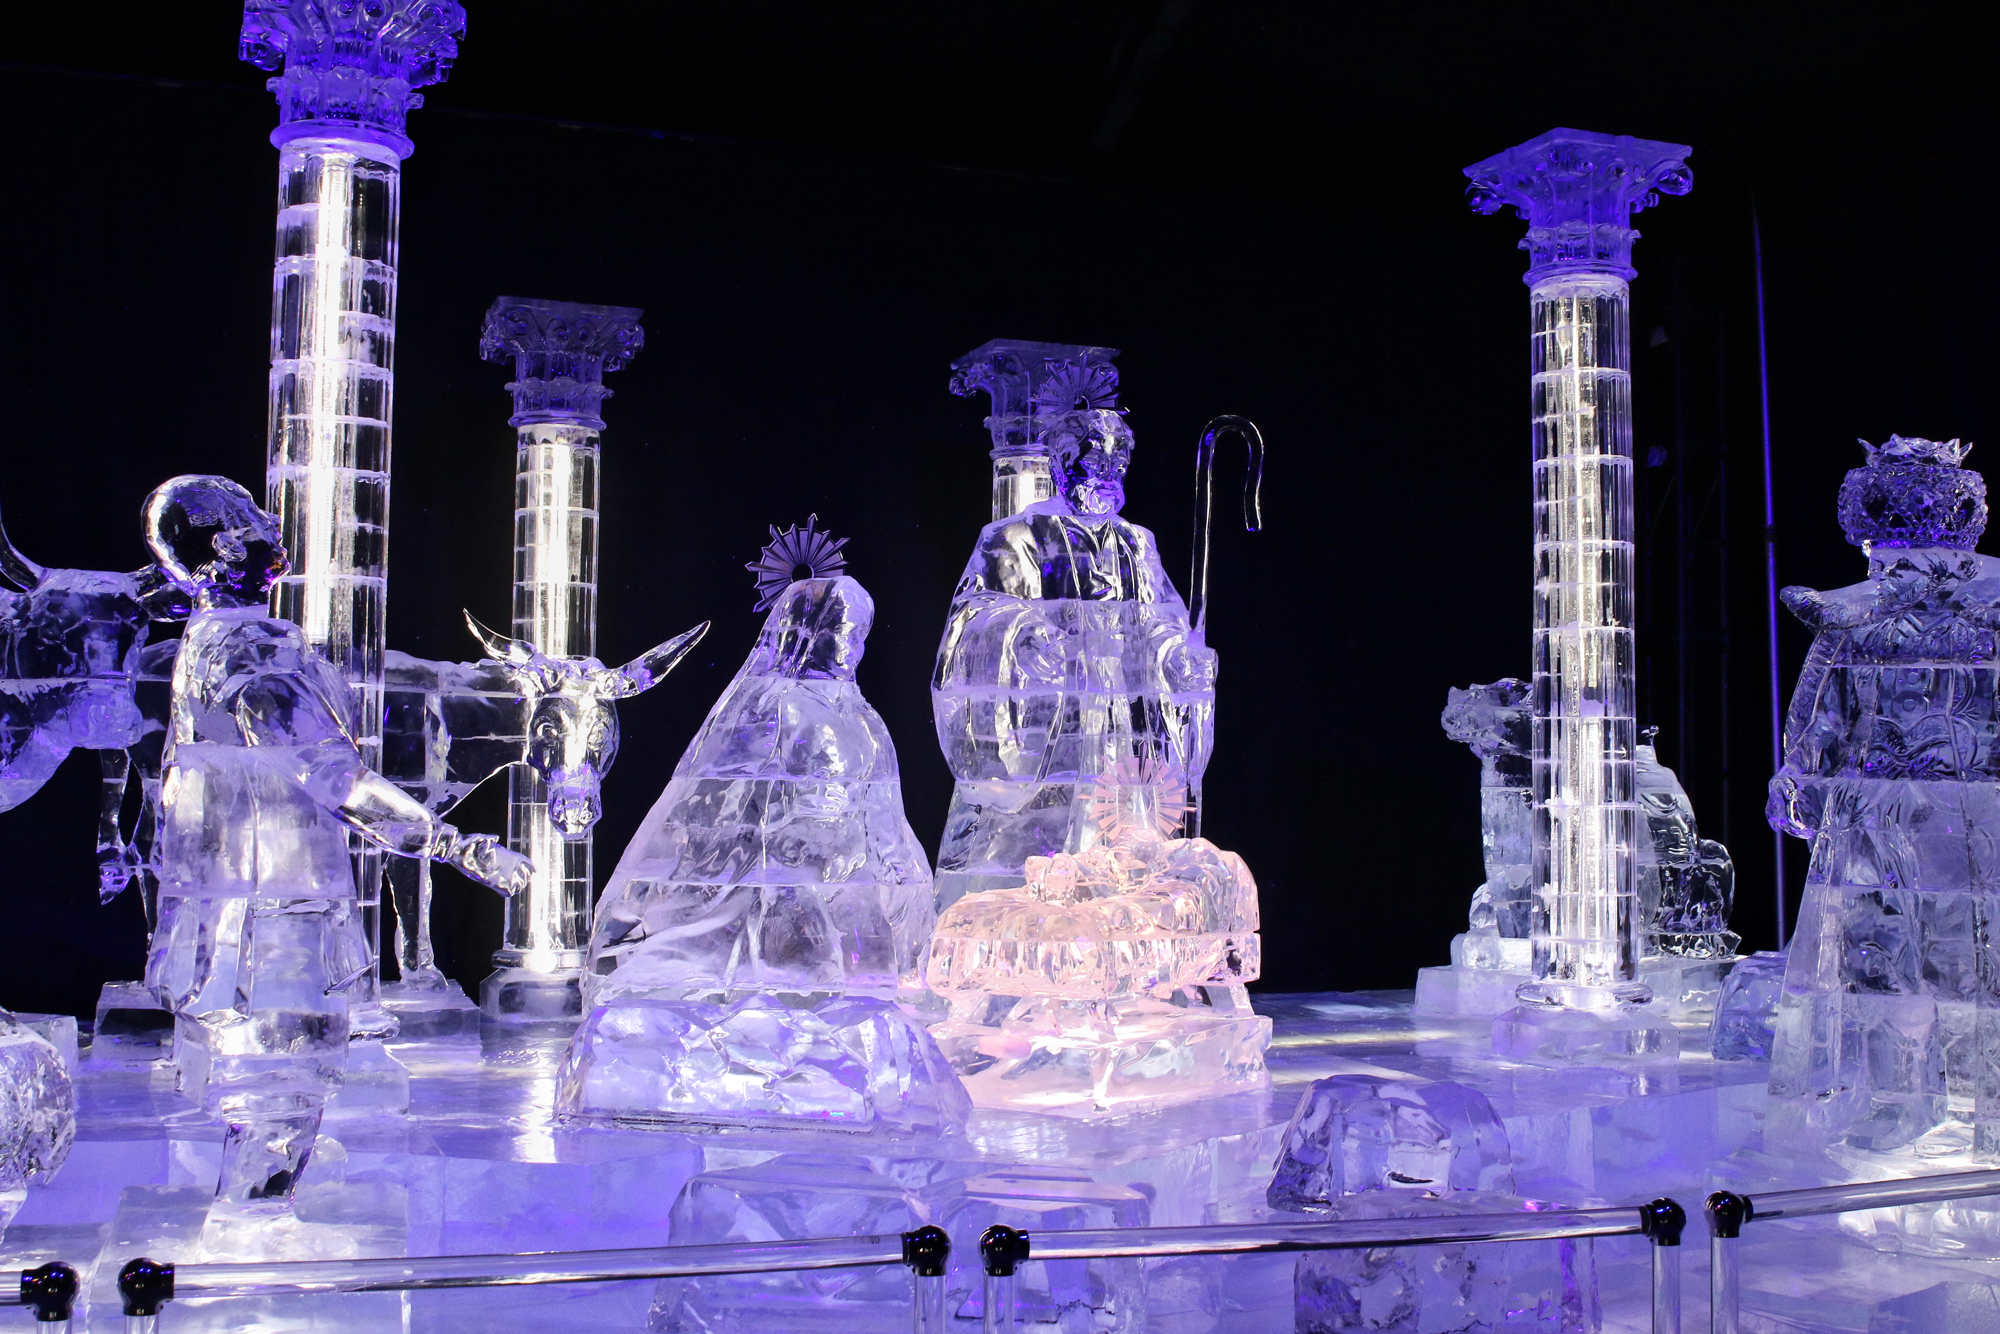 nativity scene carved in ice